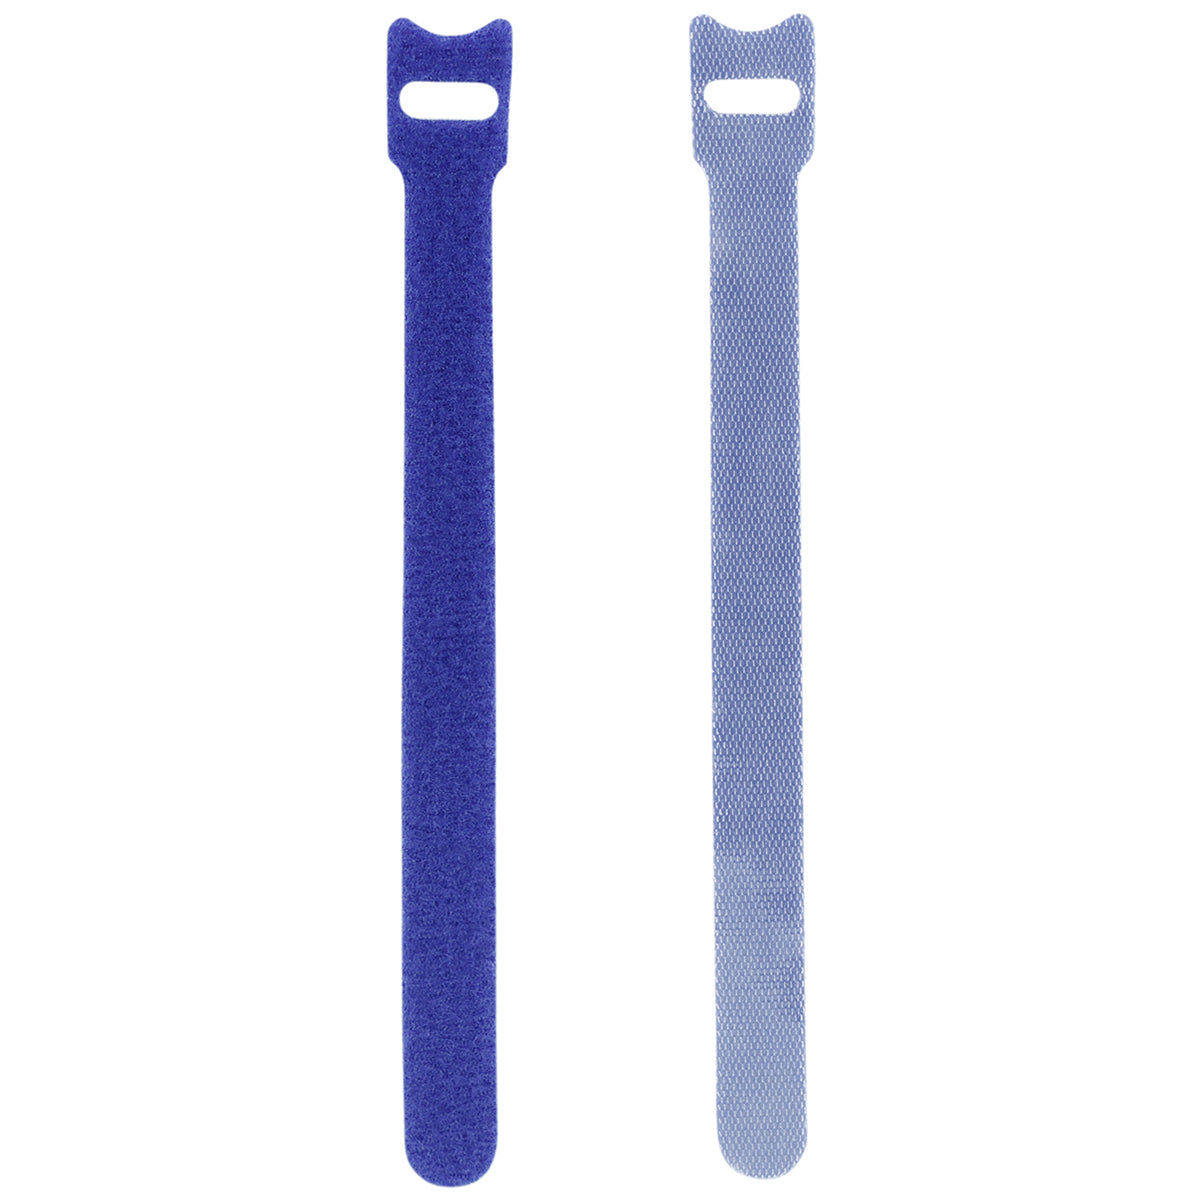 Displaying of two upright blue nylon cable ties